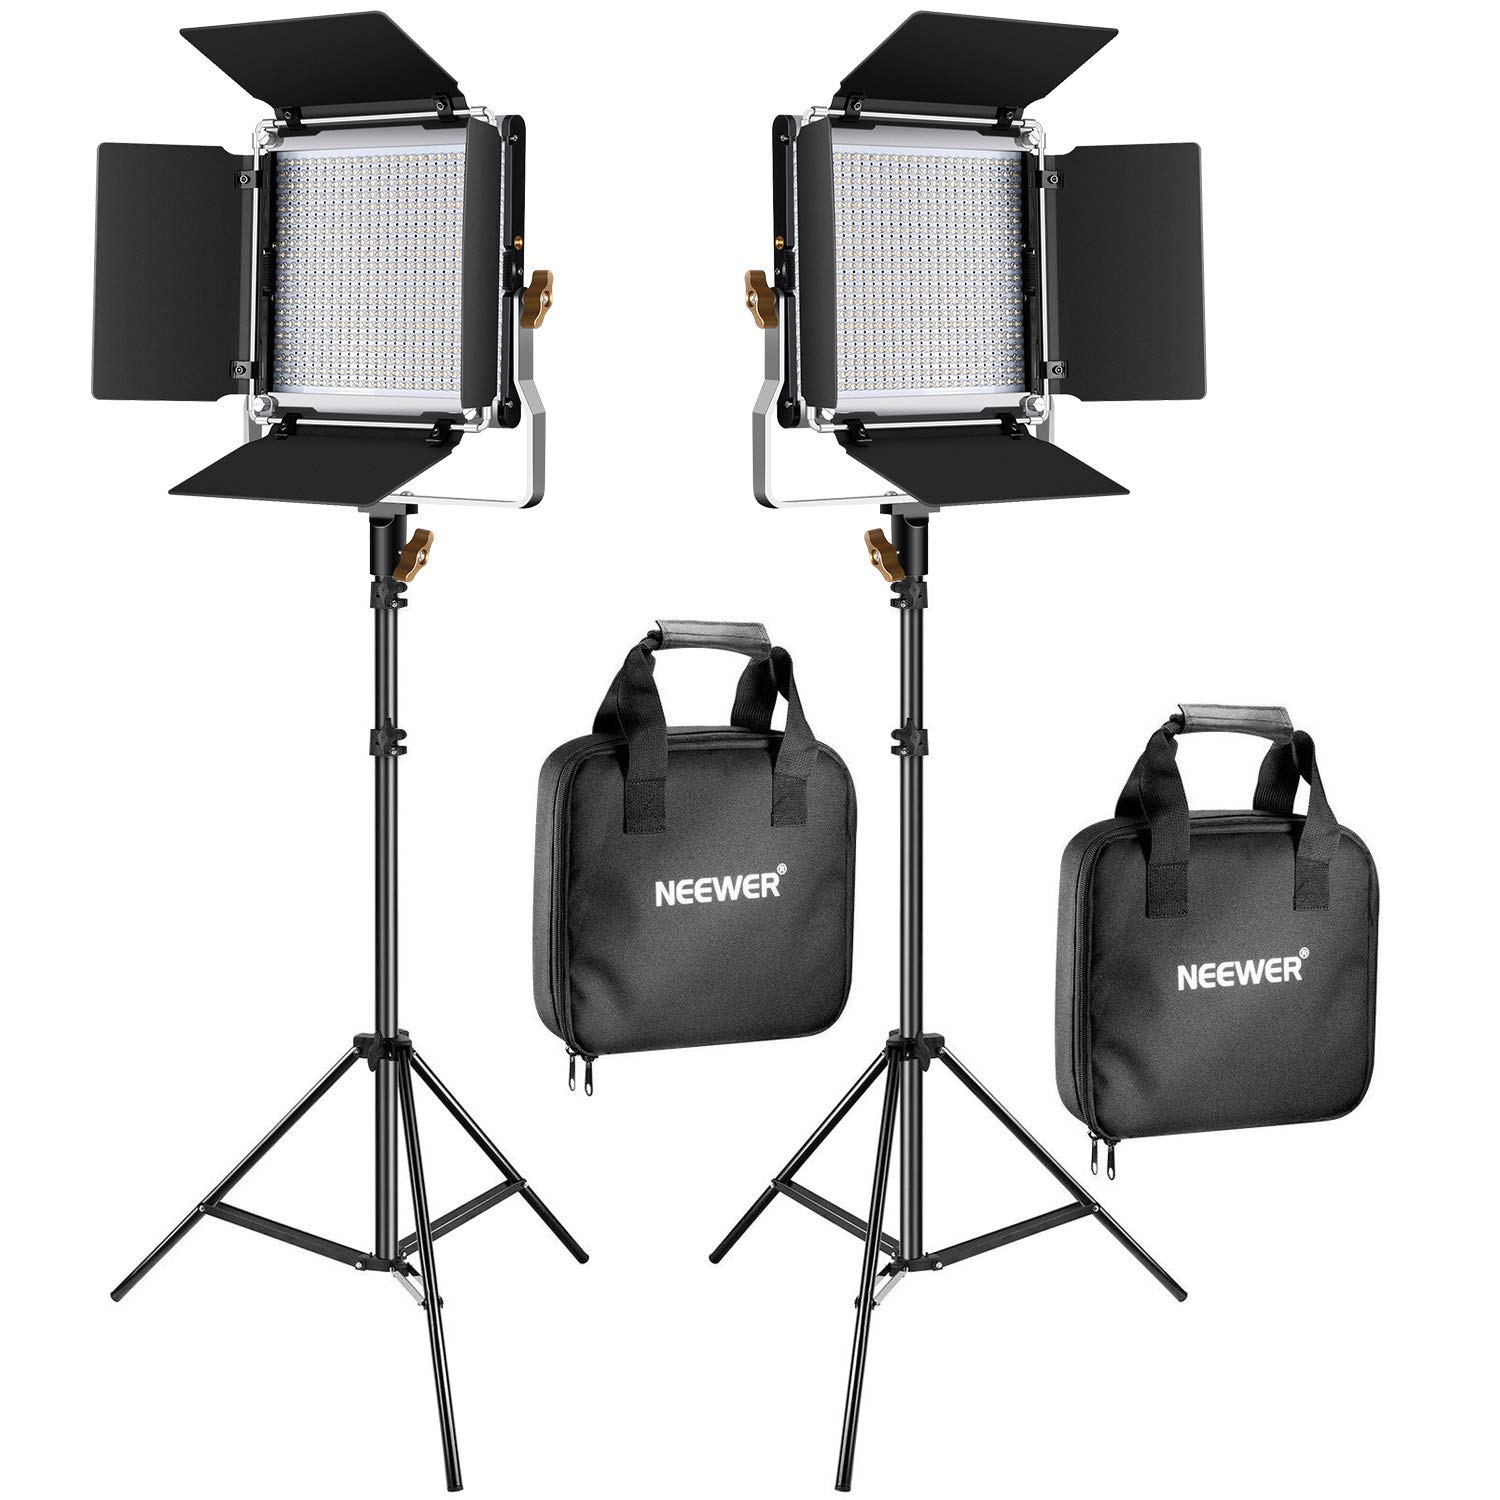 Neewer 2 Packs Upgraded 480 LED Video Light and Stand Photography Lighting Kit: Bi-Color Dimmable LED Panel with Barn Door and 200cm Heavy Duty Light Stand for Studio Portrait Product Video Shooting by Neewer